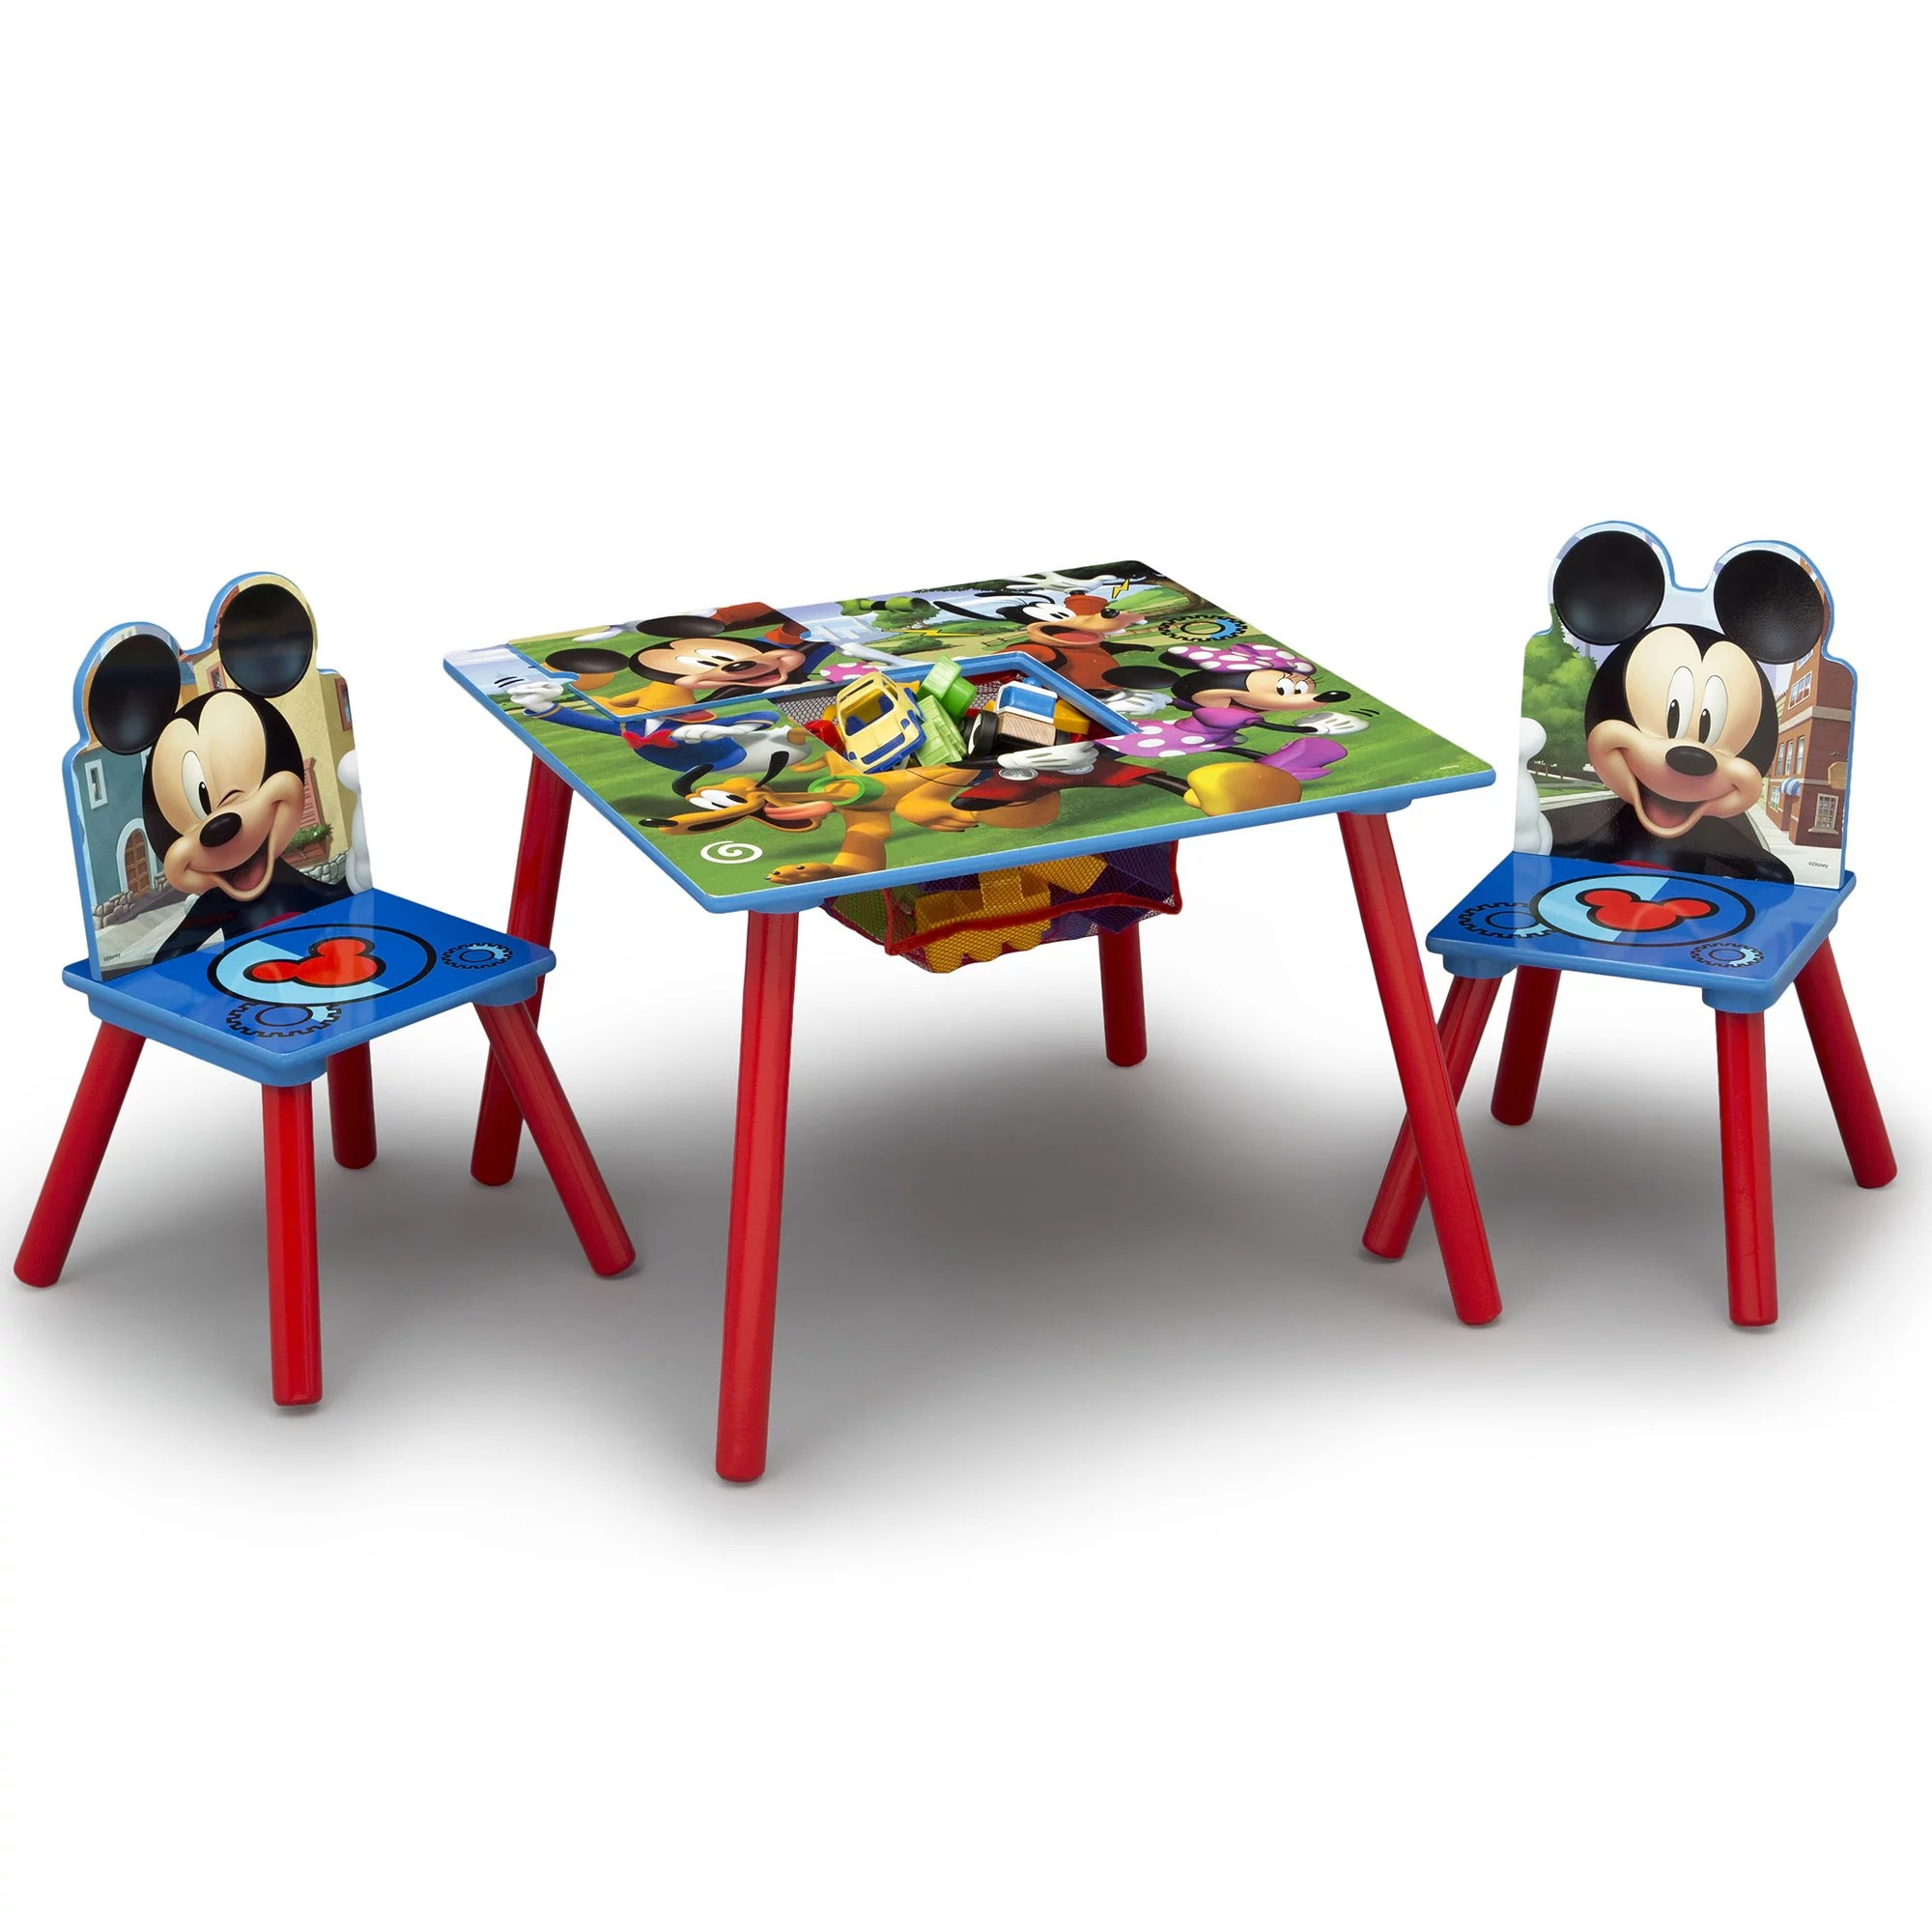 disney mickey mouse wood kids storage table and chairs set by delta children walmart com